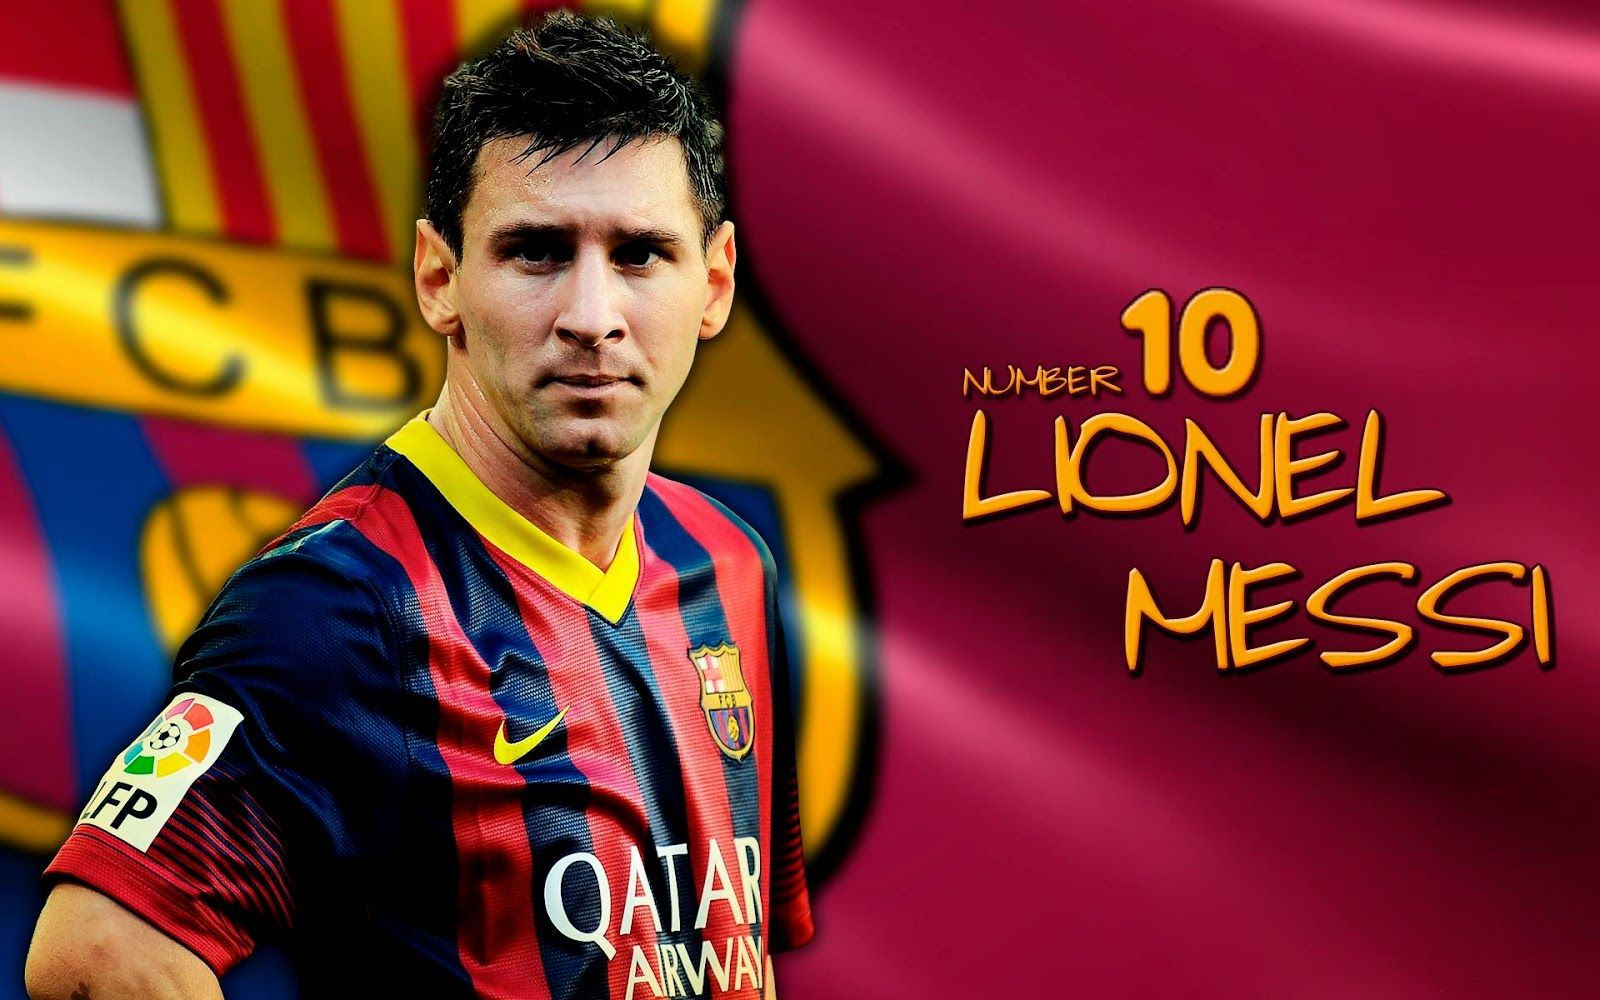 Lionel Messi Hd Wallpapers Backgrounds Wallpaper 1600x1000